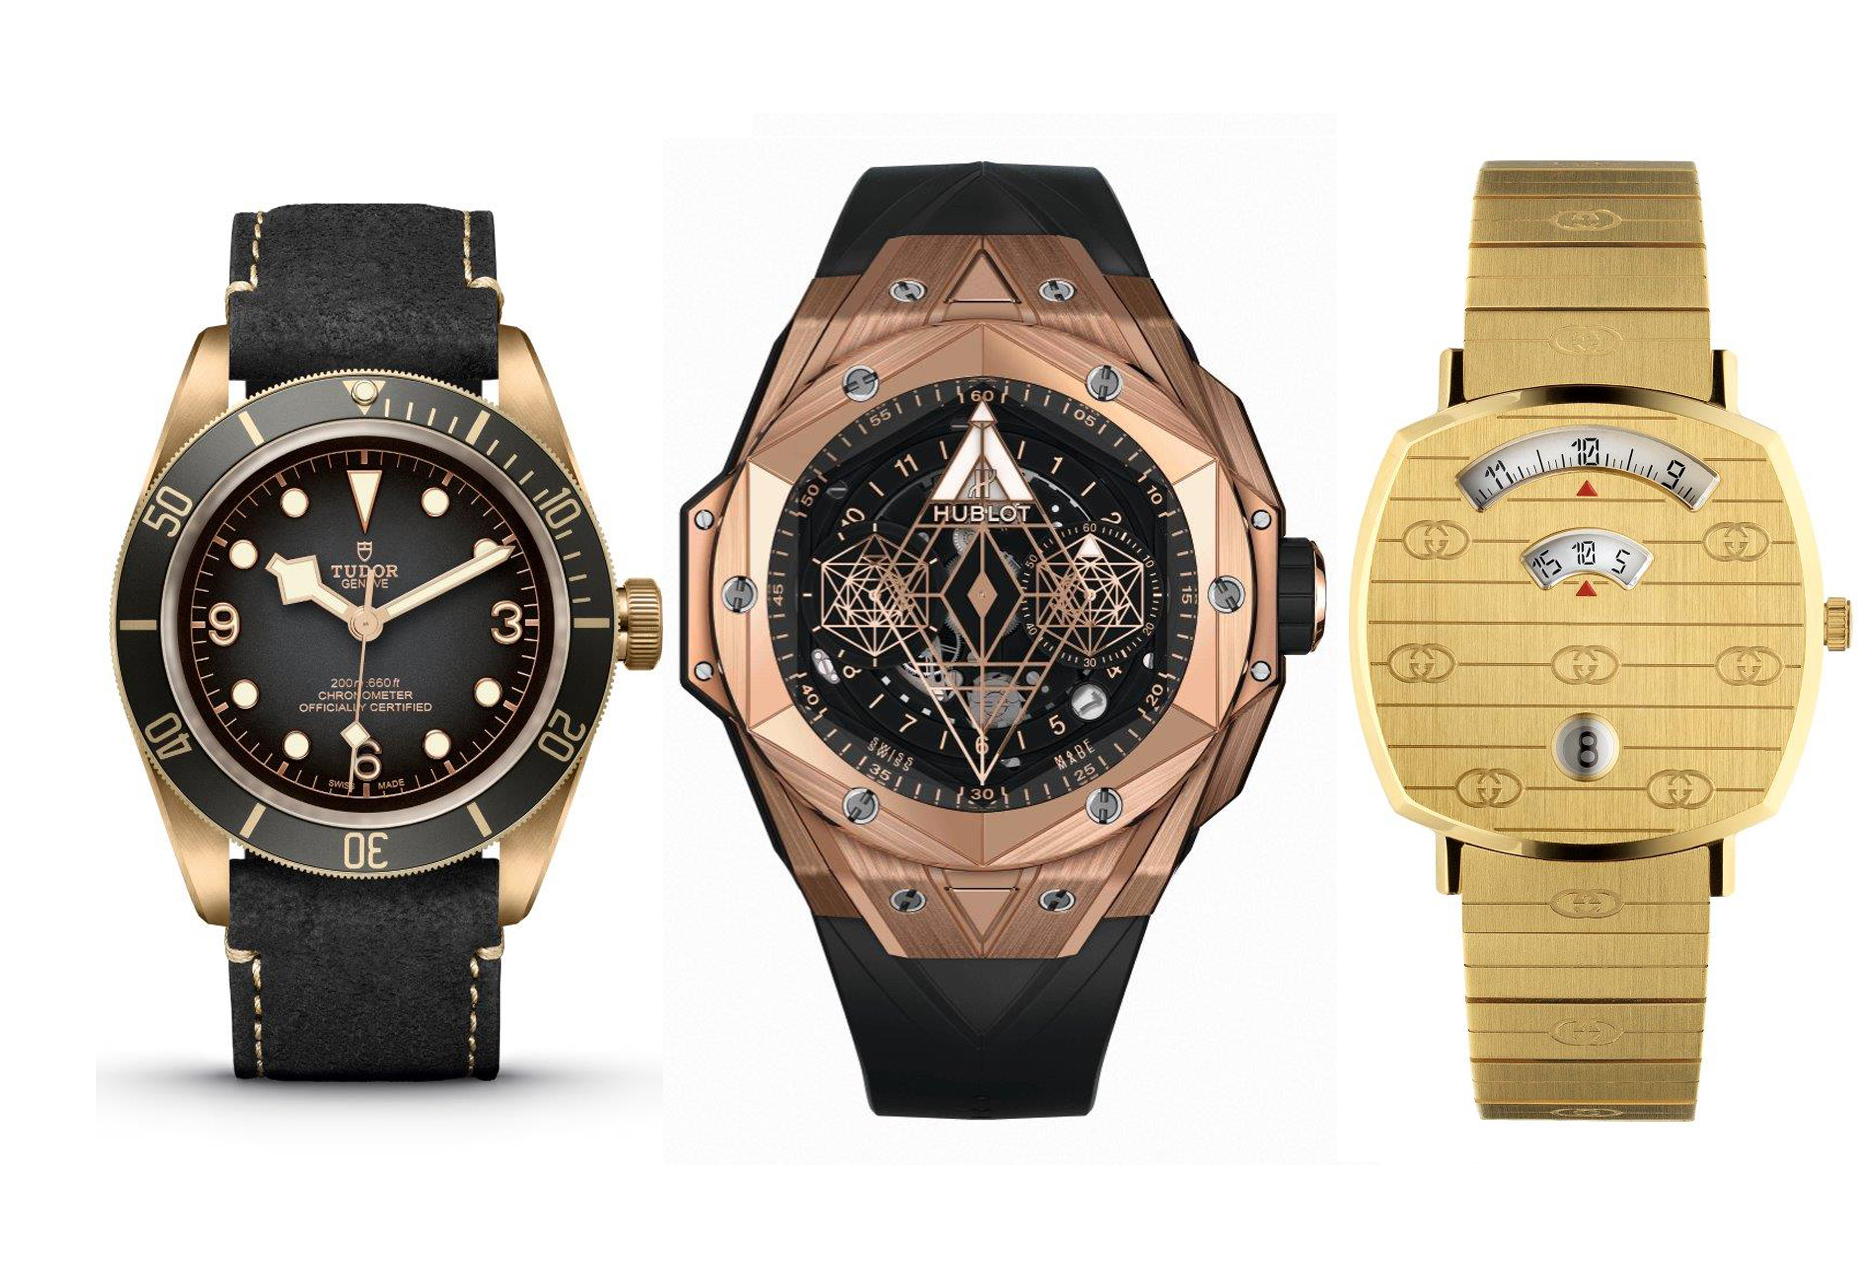 2019 WATCH TREND REPORT: Baselworld and Beyond